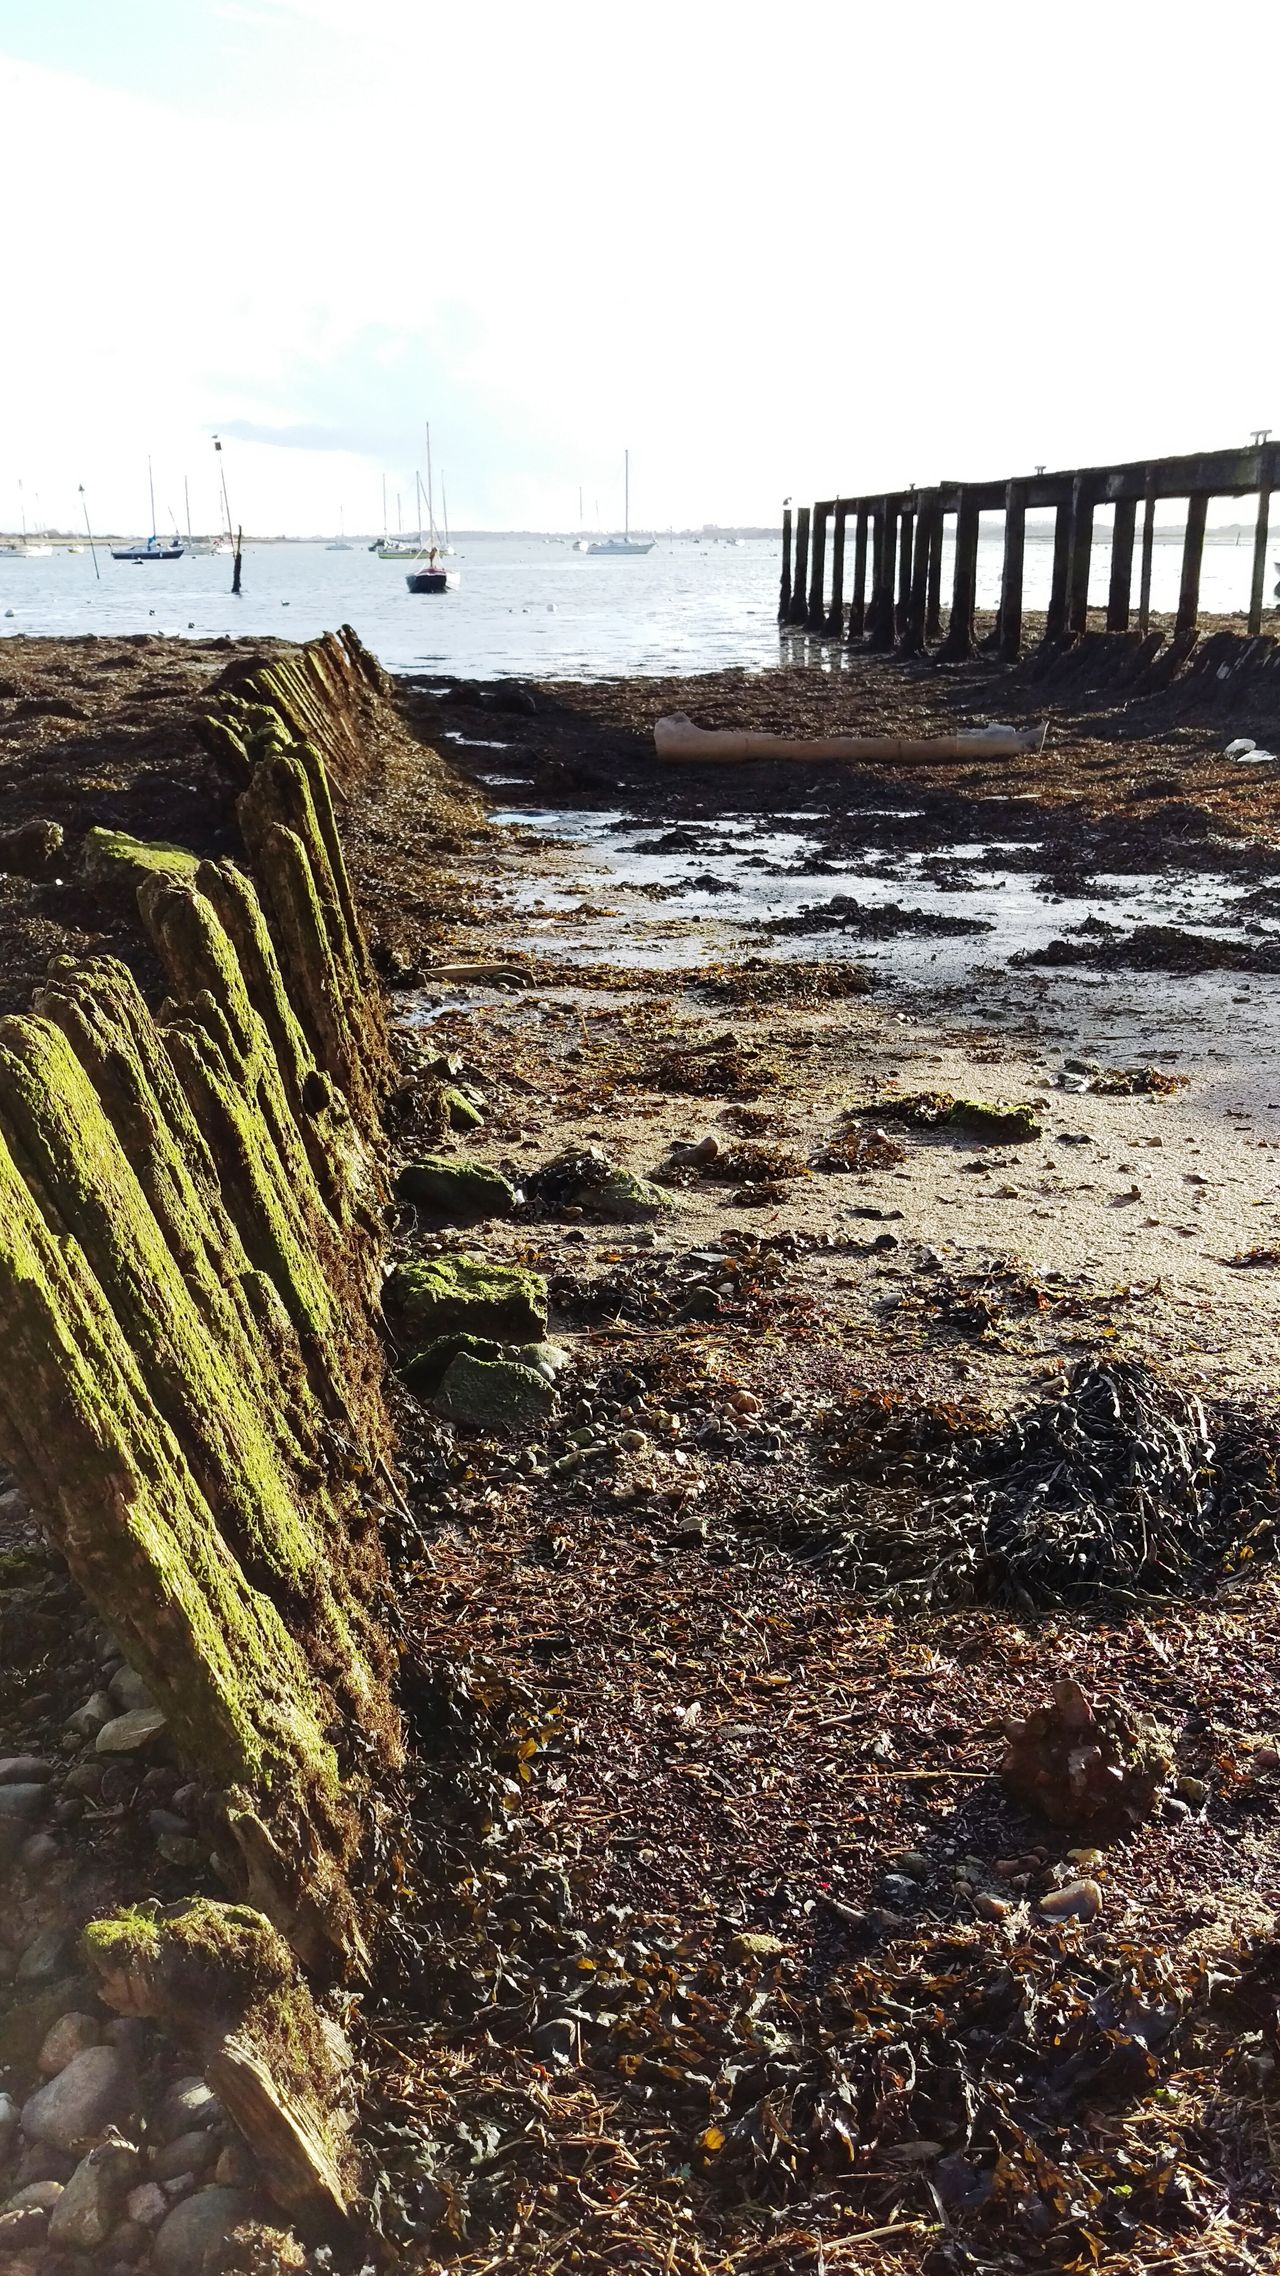 Jetty Low Tide Shore Shoreline Seaweed Exposed Chichester Harbour